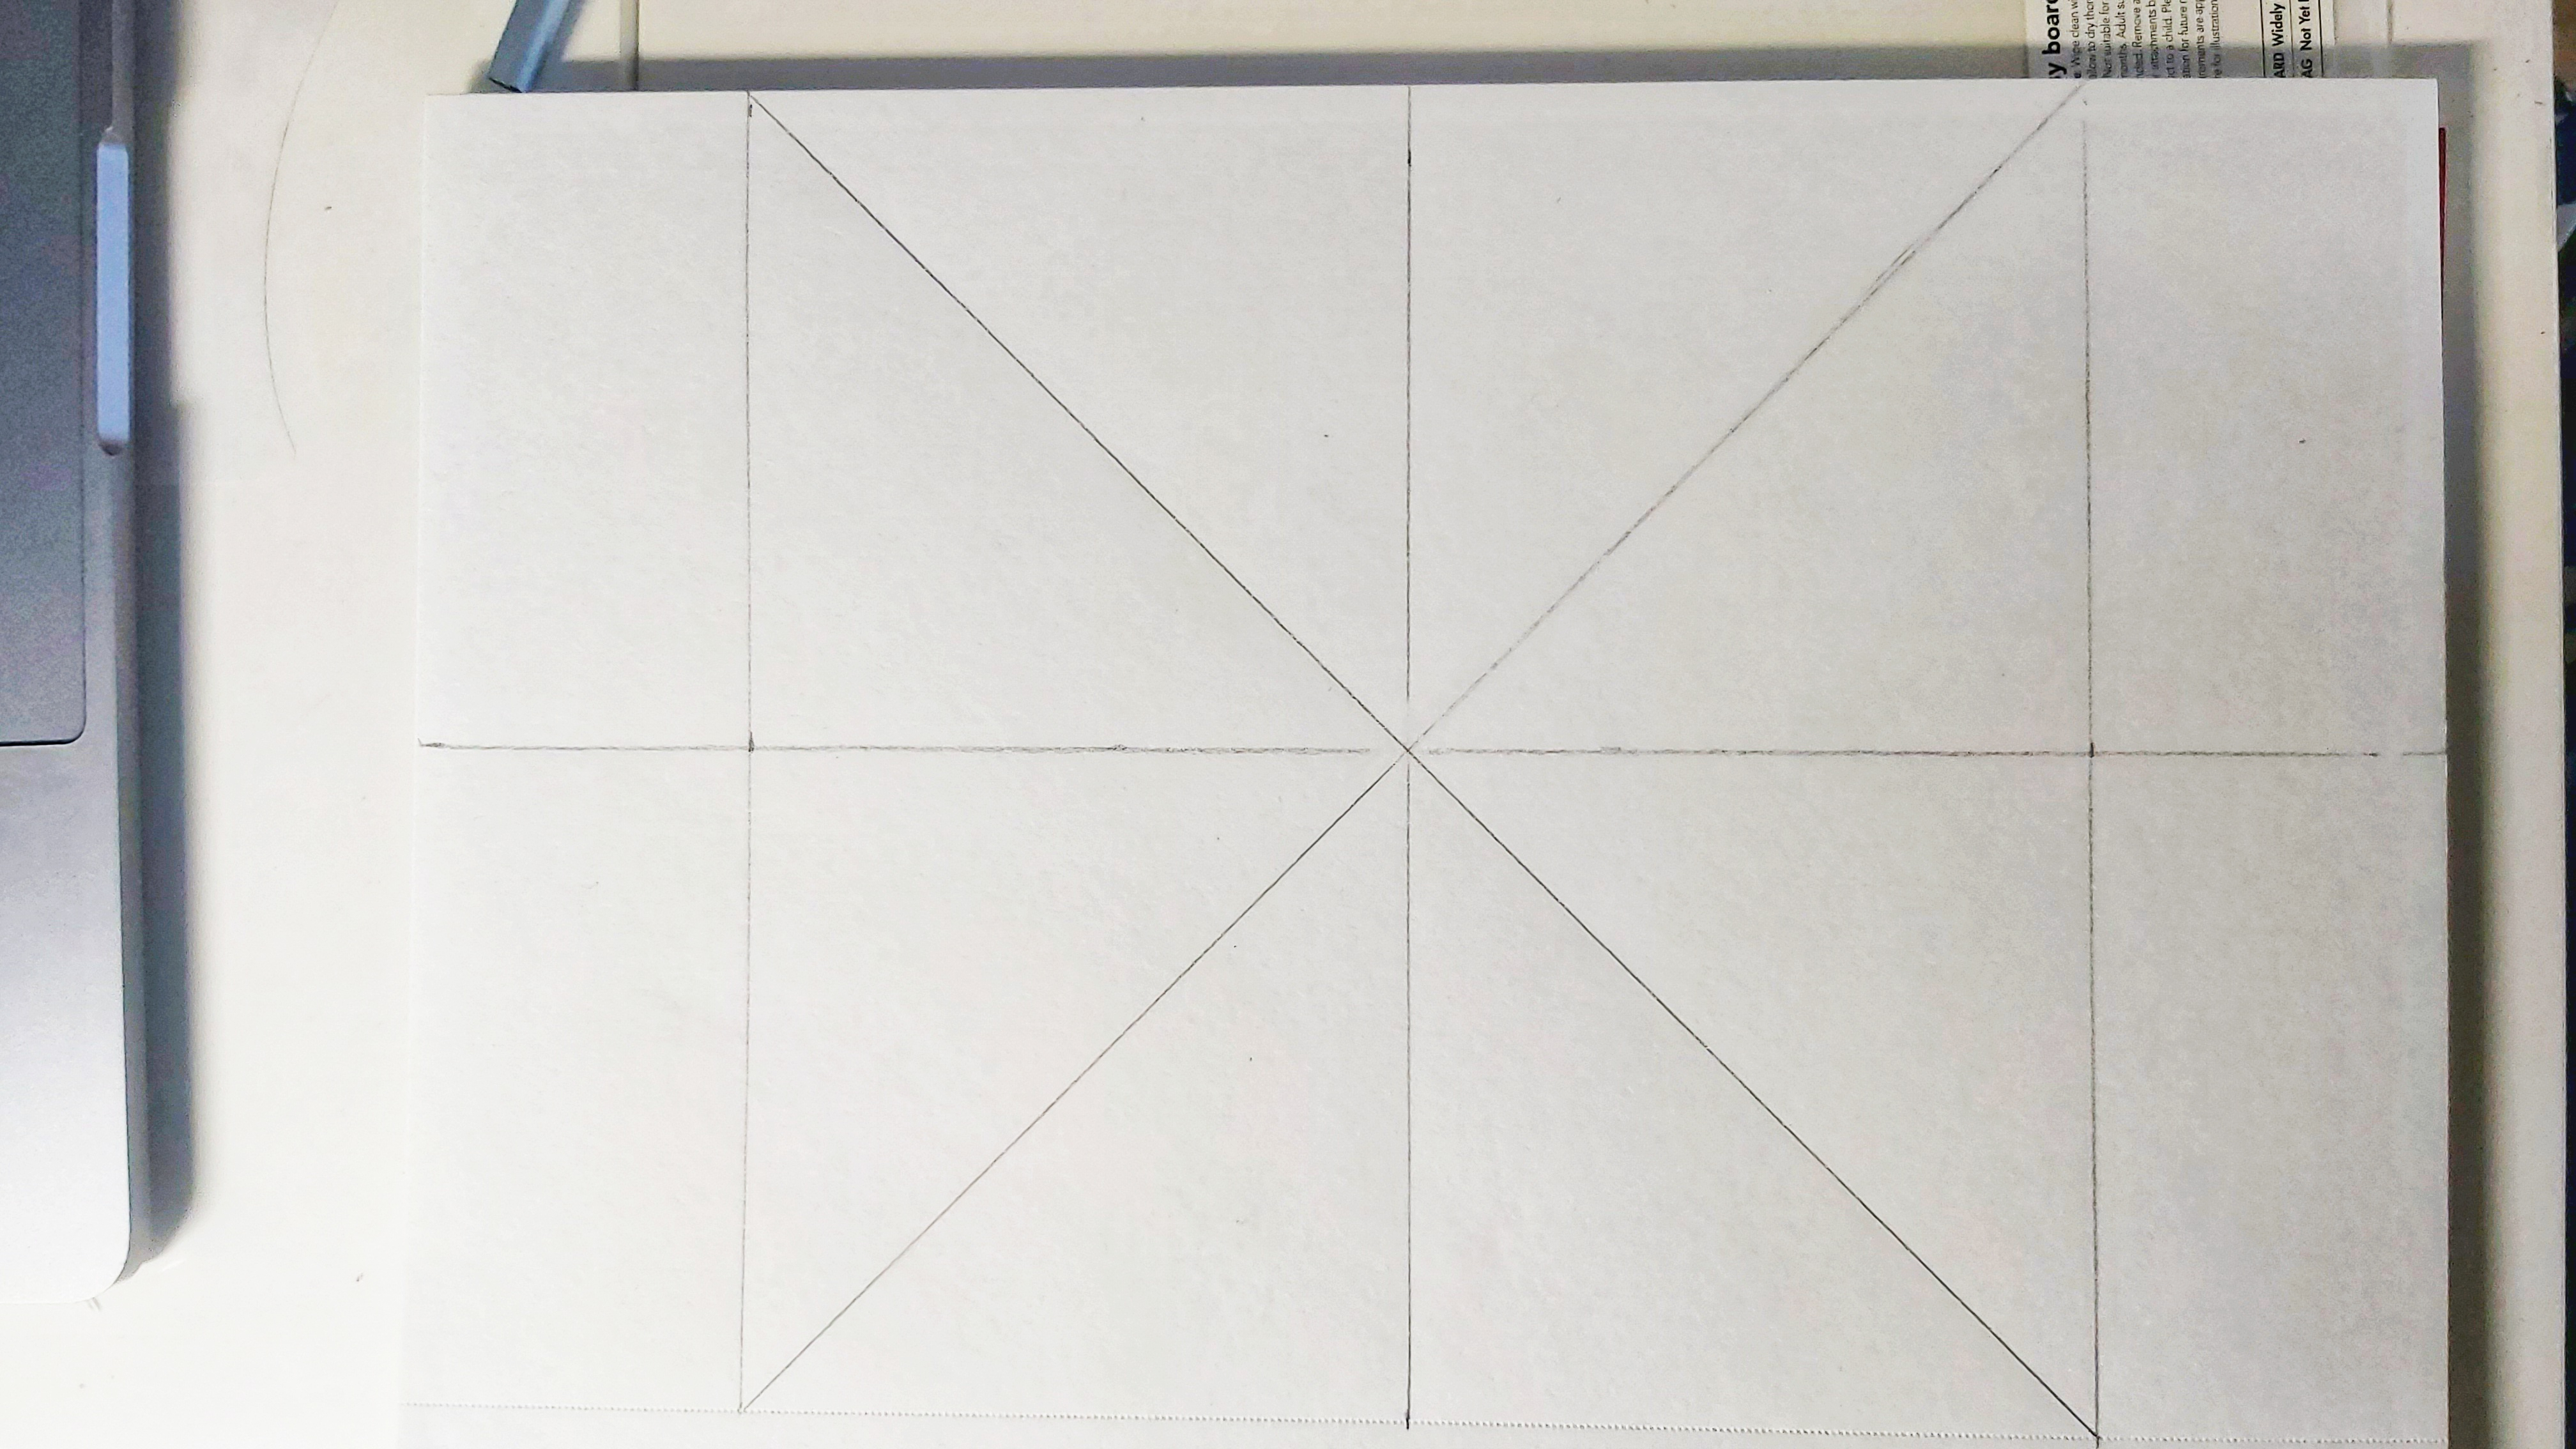 Square divided into 8 pieces, pencil